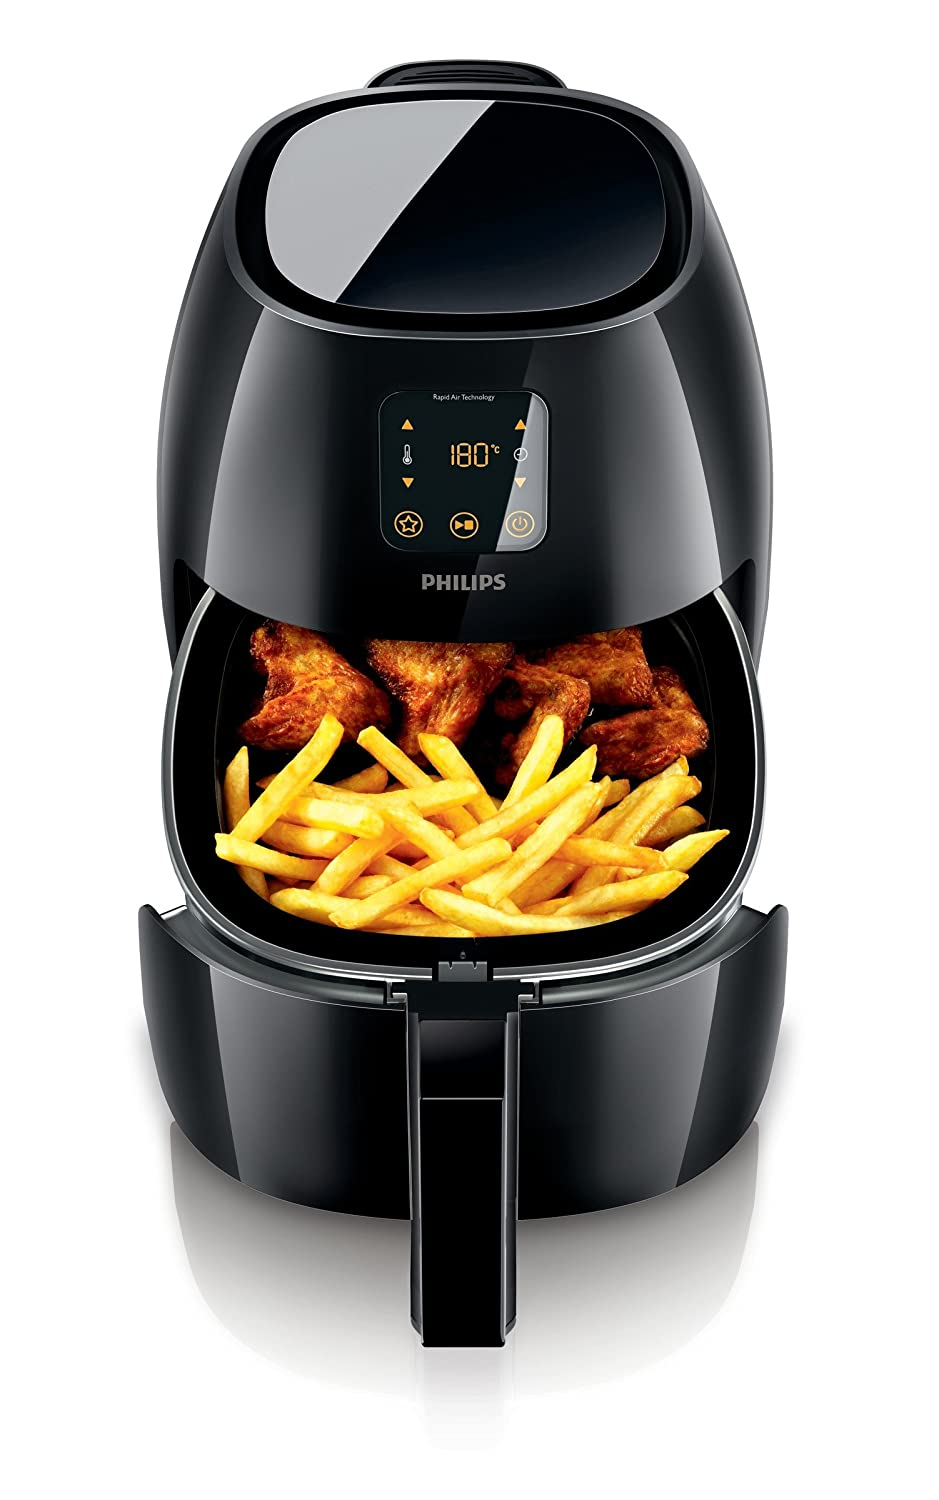 Philips XL Airfryer, The Original Airfryer, Fry Healthy with 75% Less Fat, Black, HD9240/94